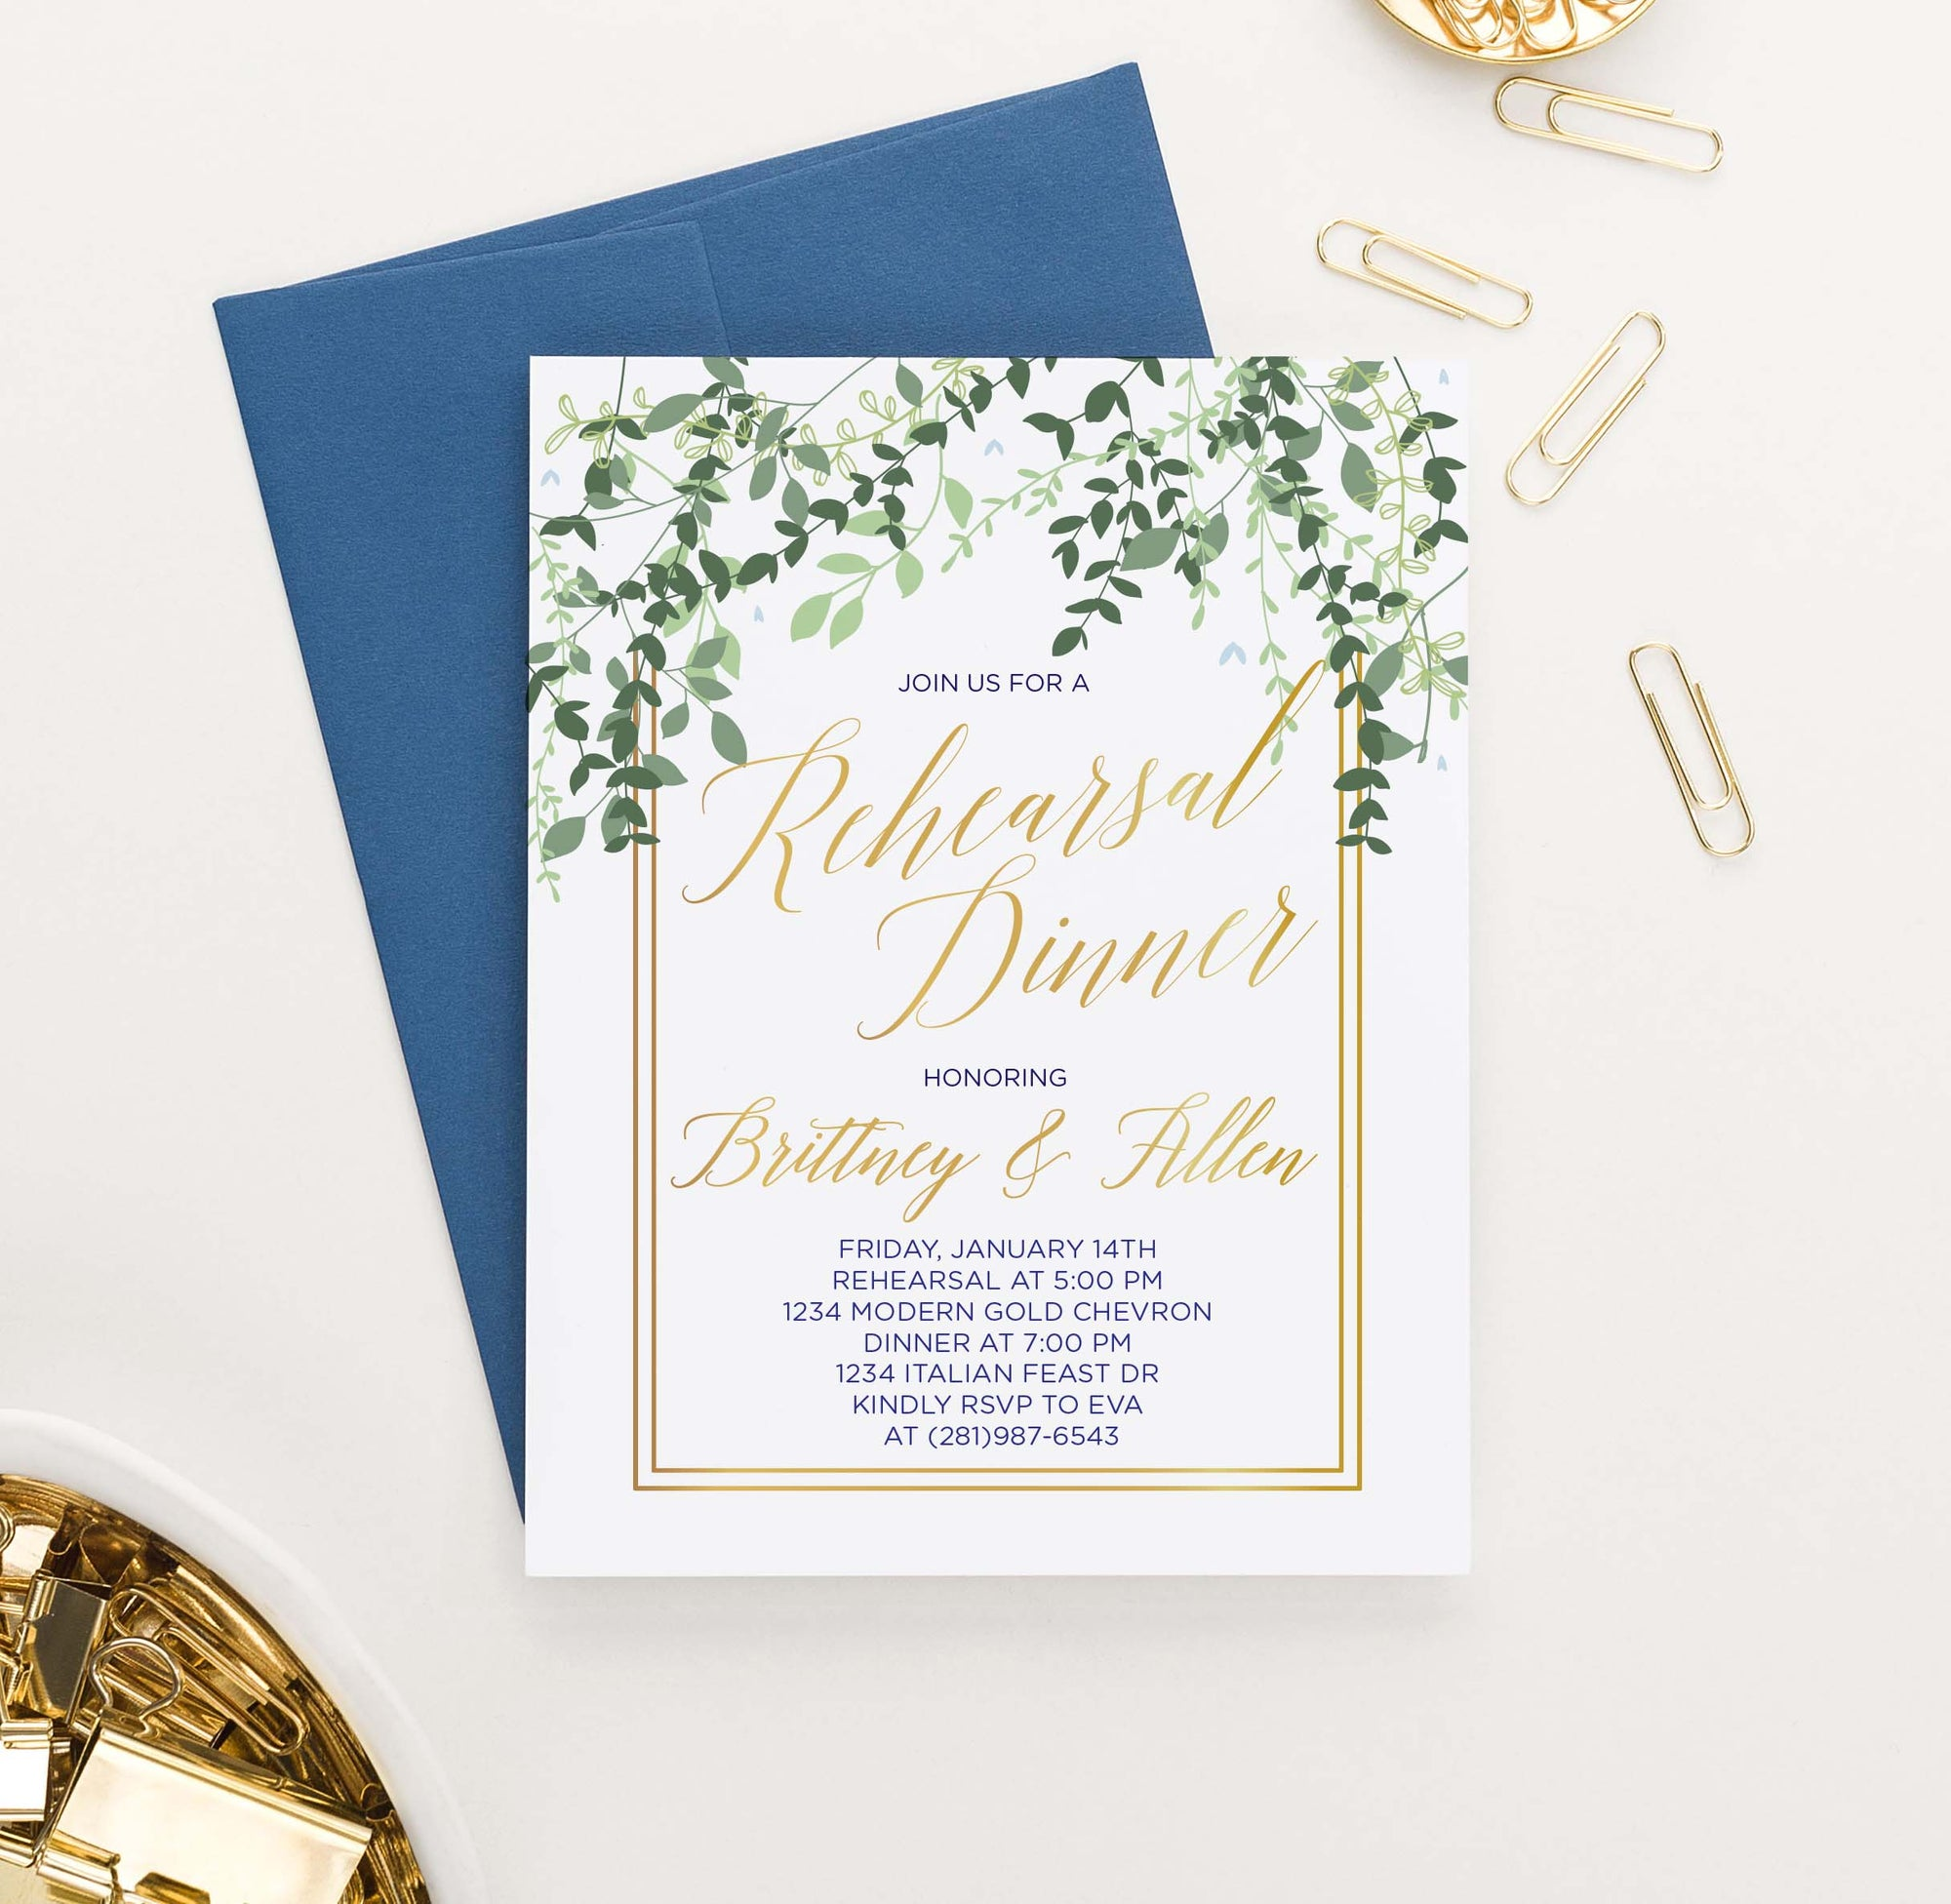 RDI011 greenery vines rehearsal dinner invites with gold border elegant gold leaves